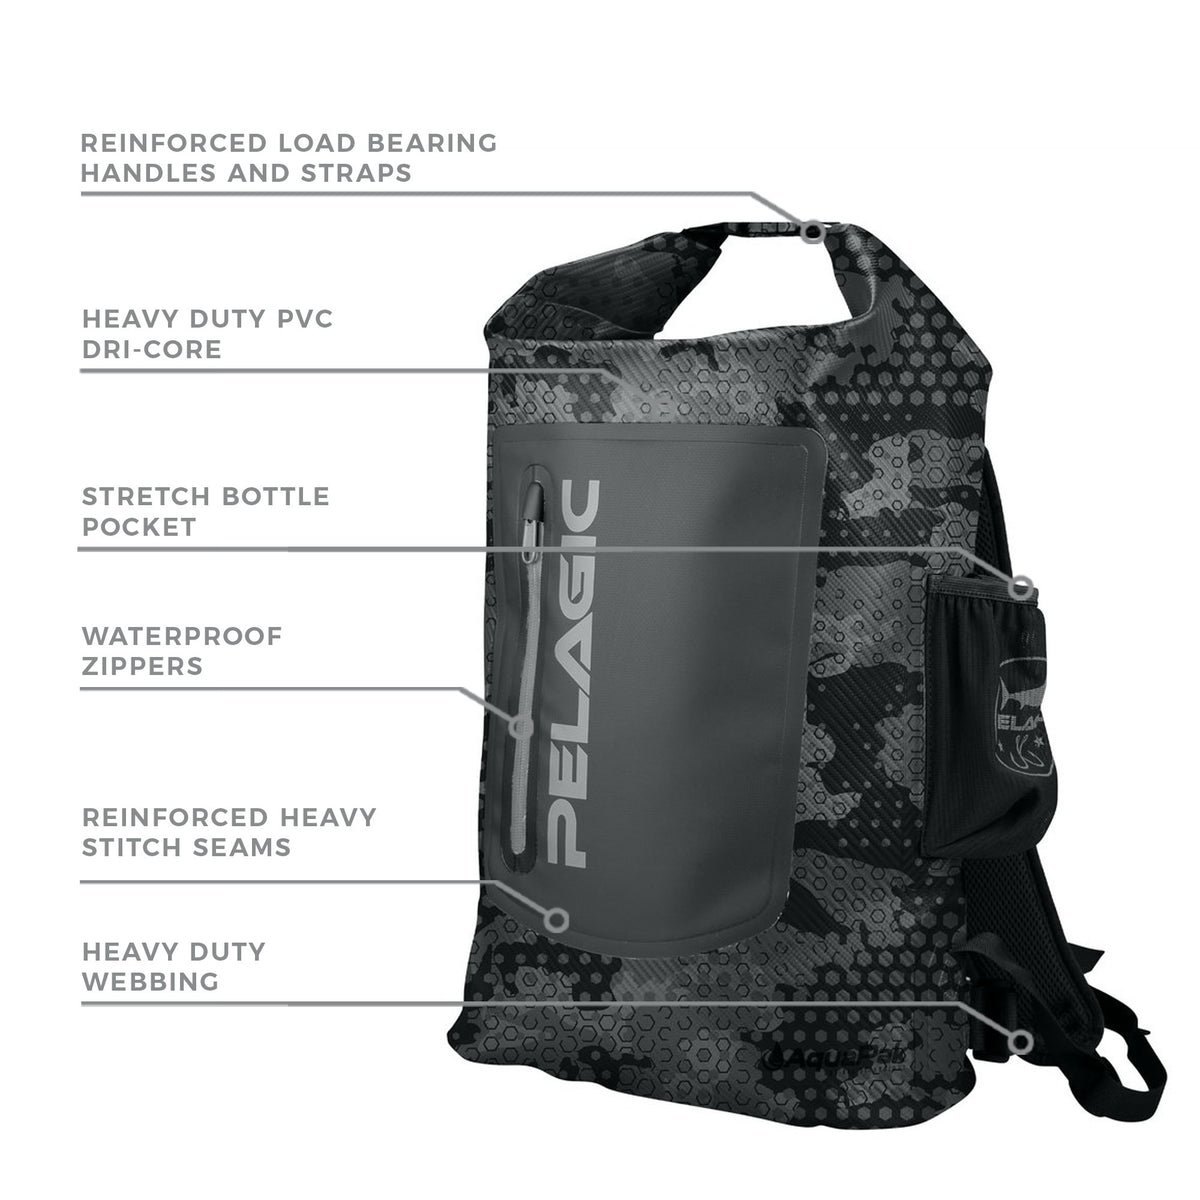 30L Aquapak Backpack Big Image - 2